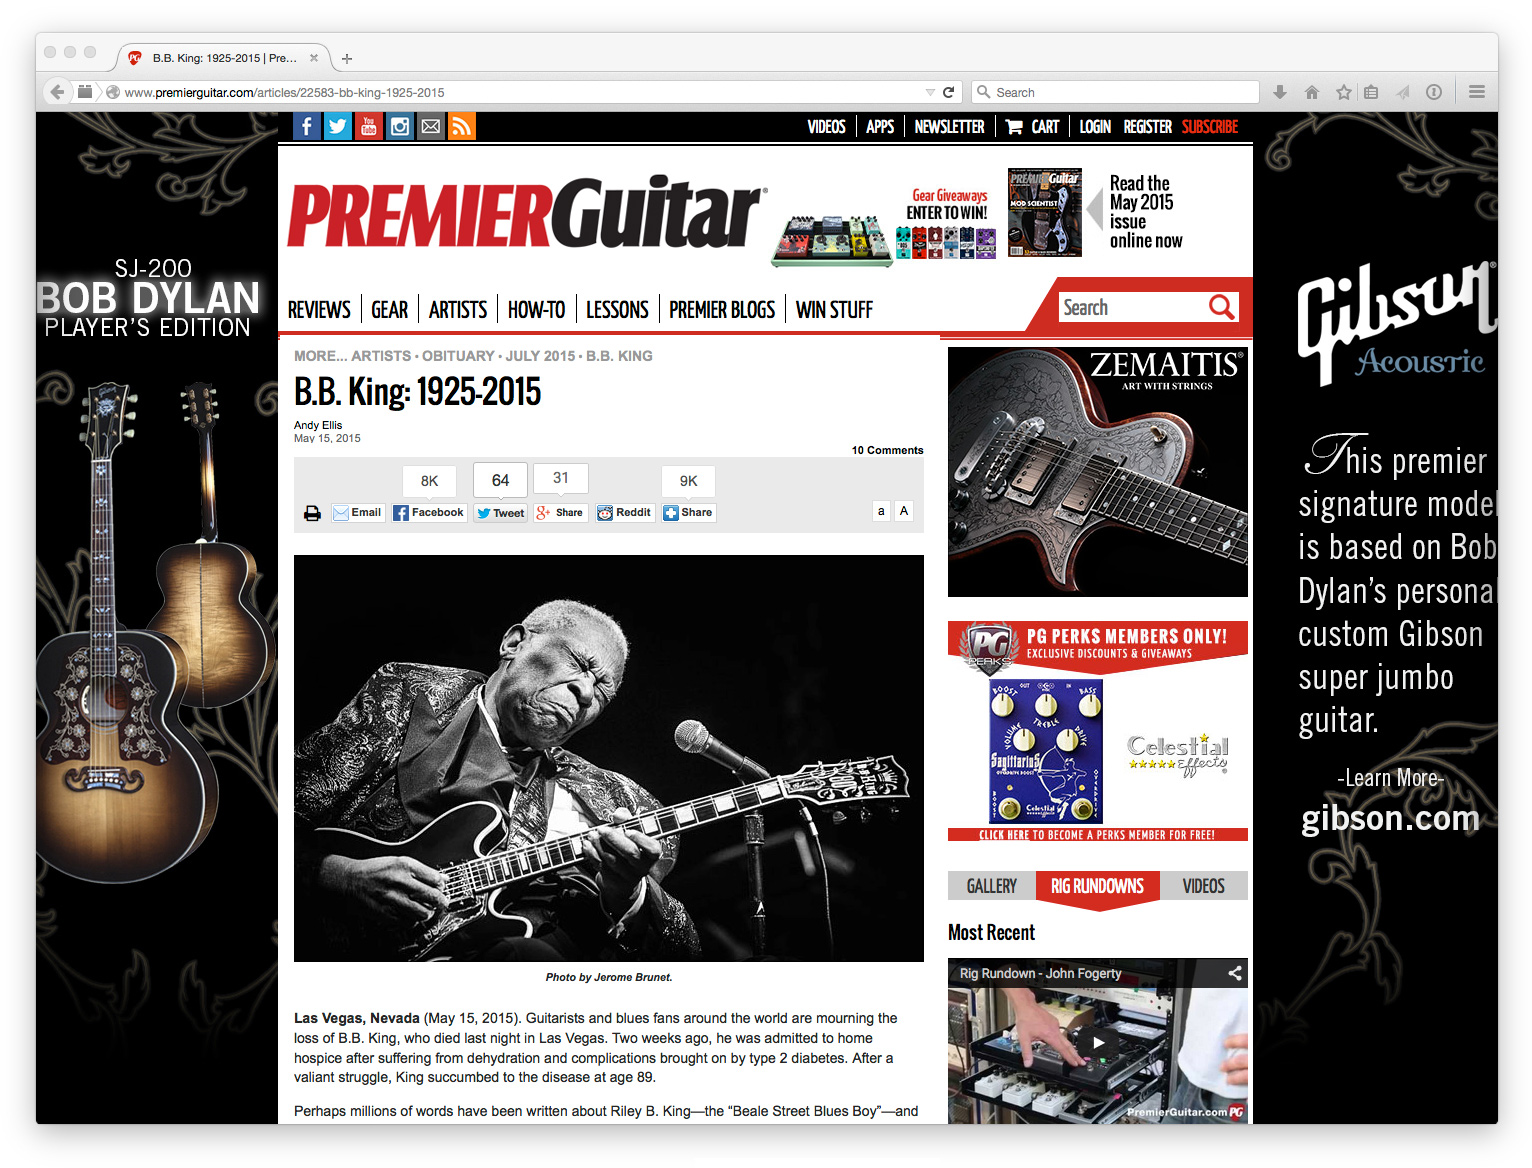 Premier_Guitar_2015_BBKing_Jerome_Brunet